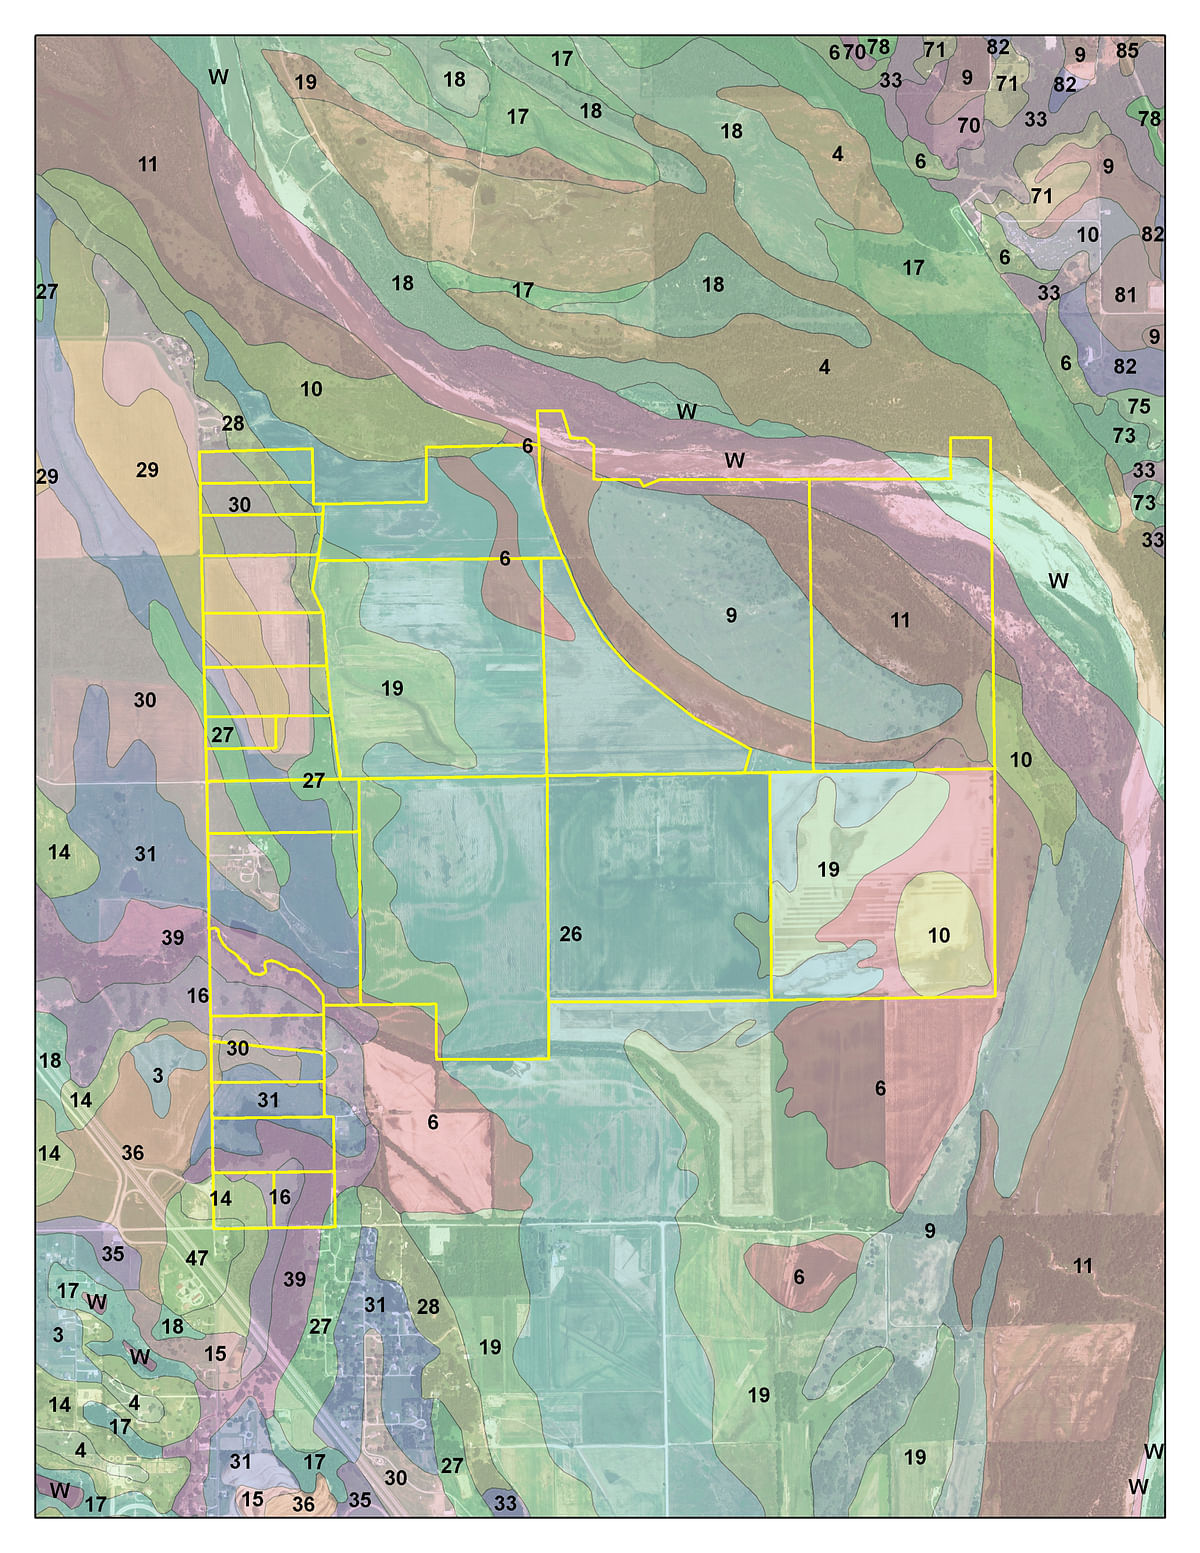 FARMLAND AUCTION - LAND AUCTION - 1,371+/- ACRES OFFERED IN